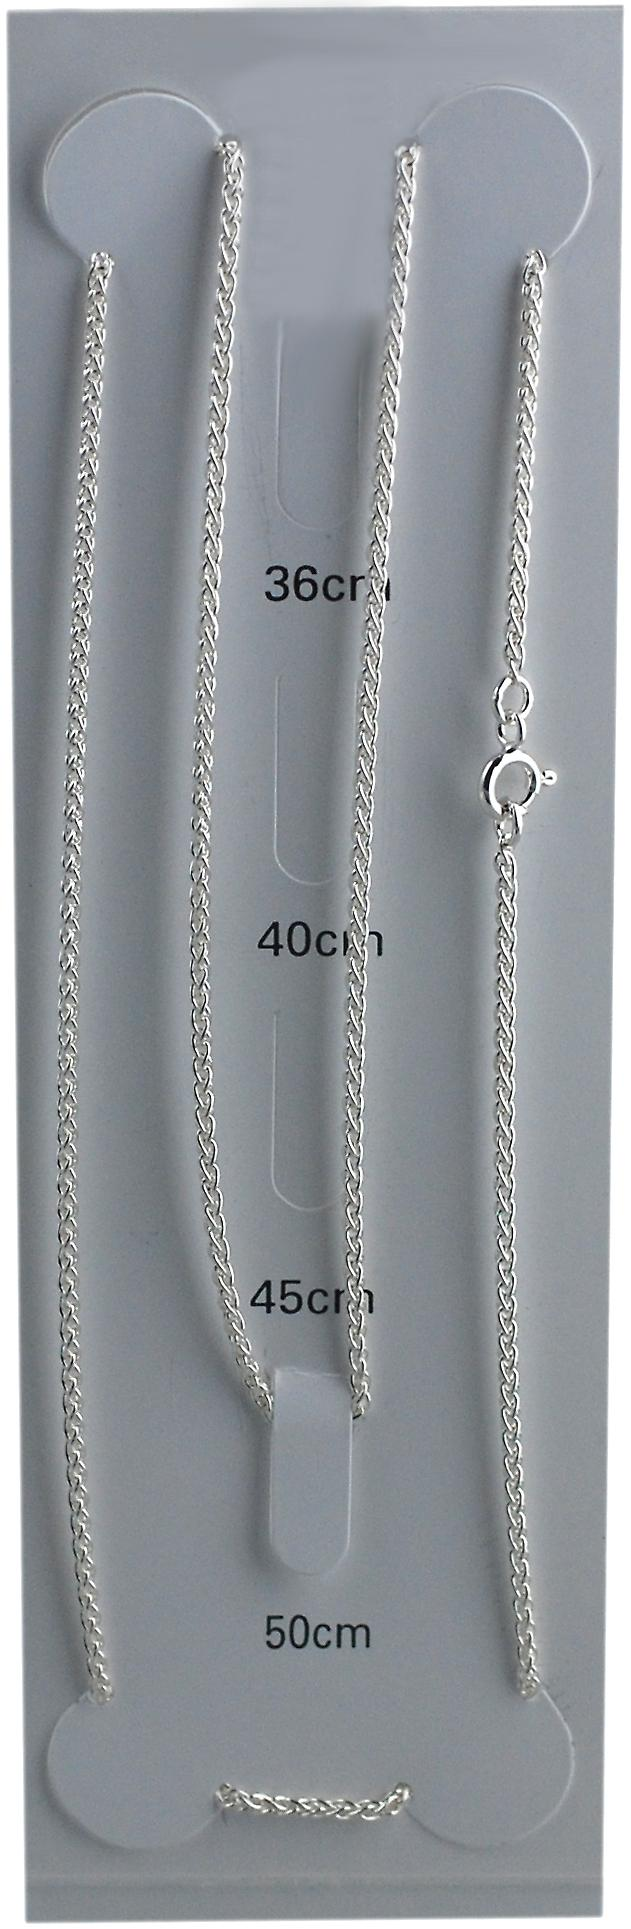 Silver 1.6mm wide Spiga Pendant Chain 20 inches